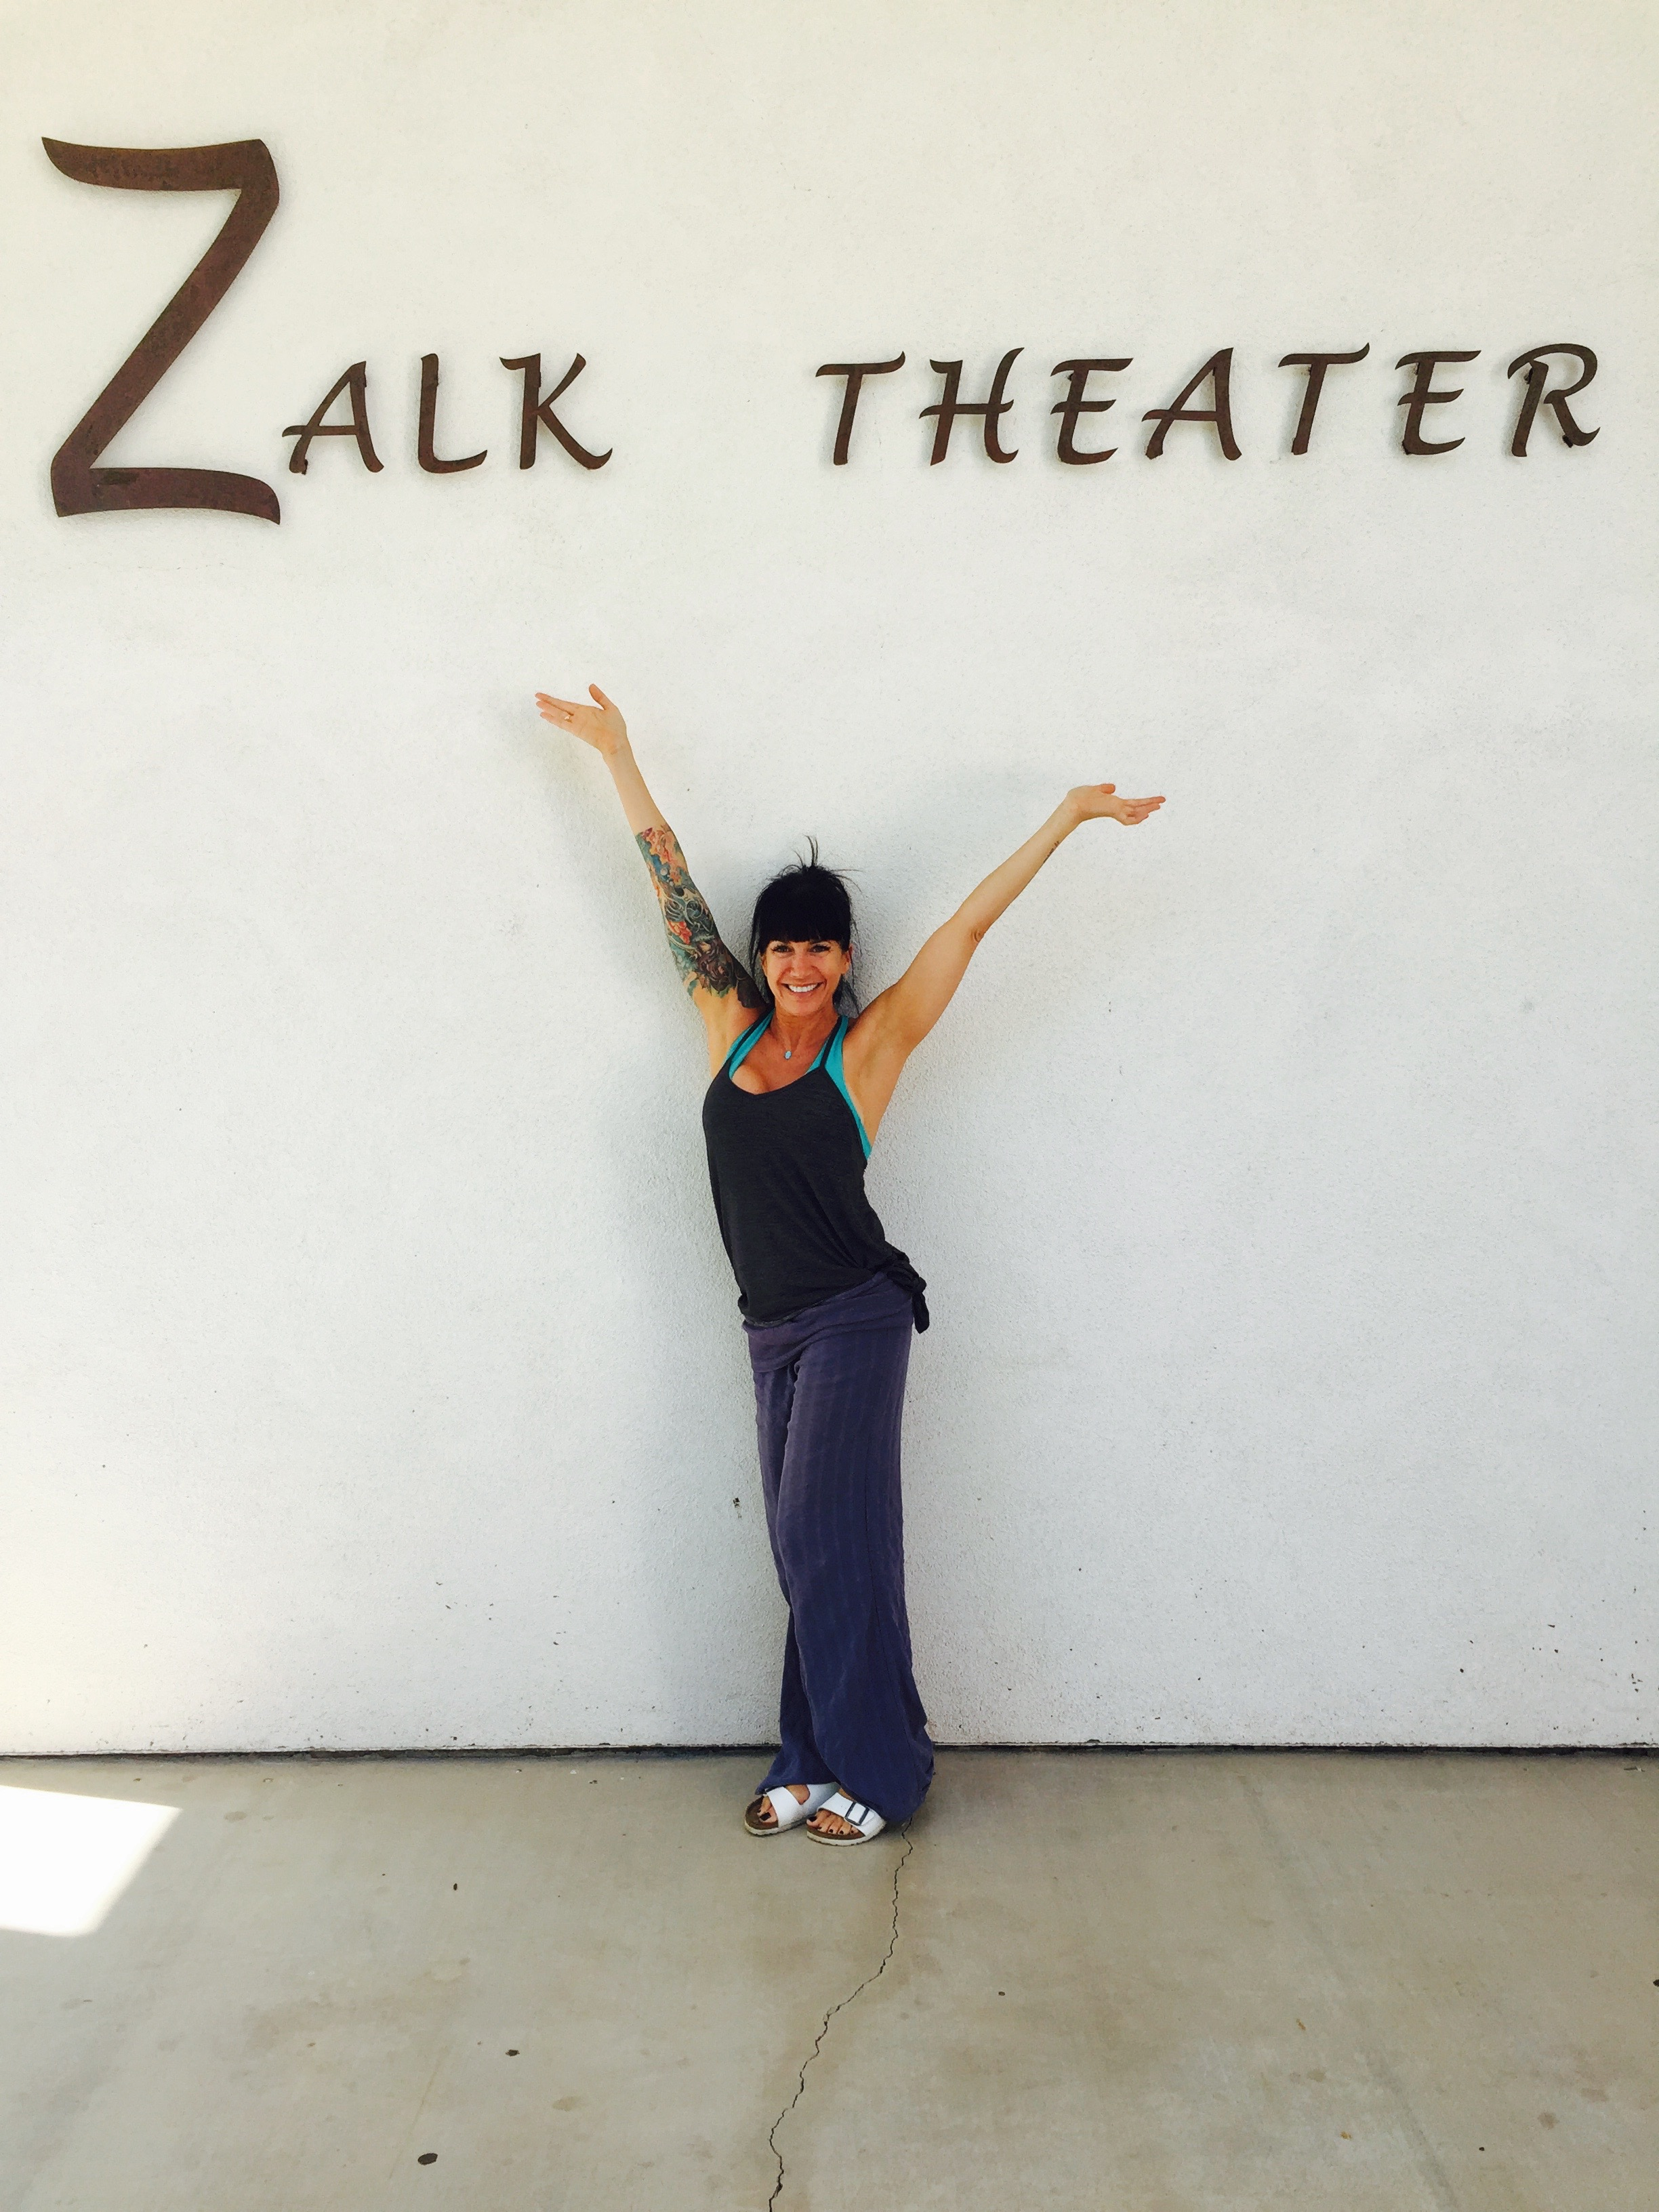 Happy Valley School/ Ojai, Zalk Theater.